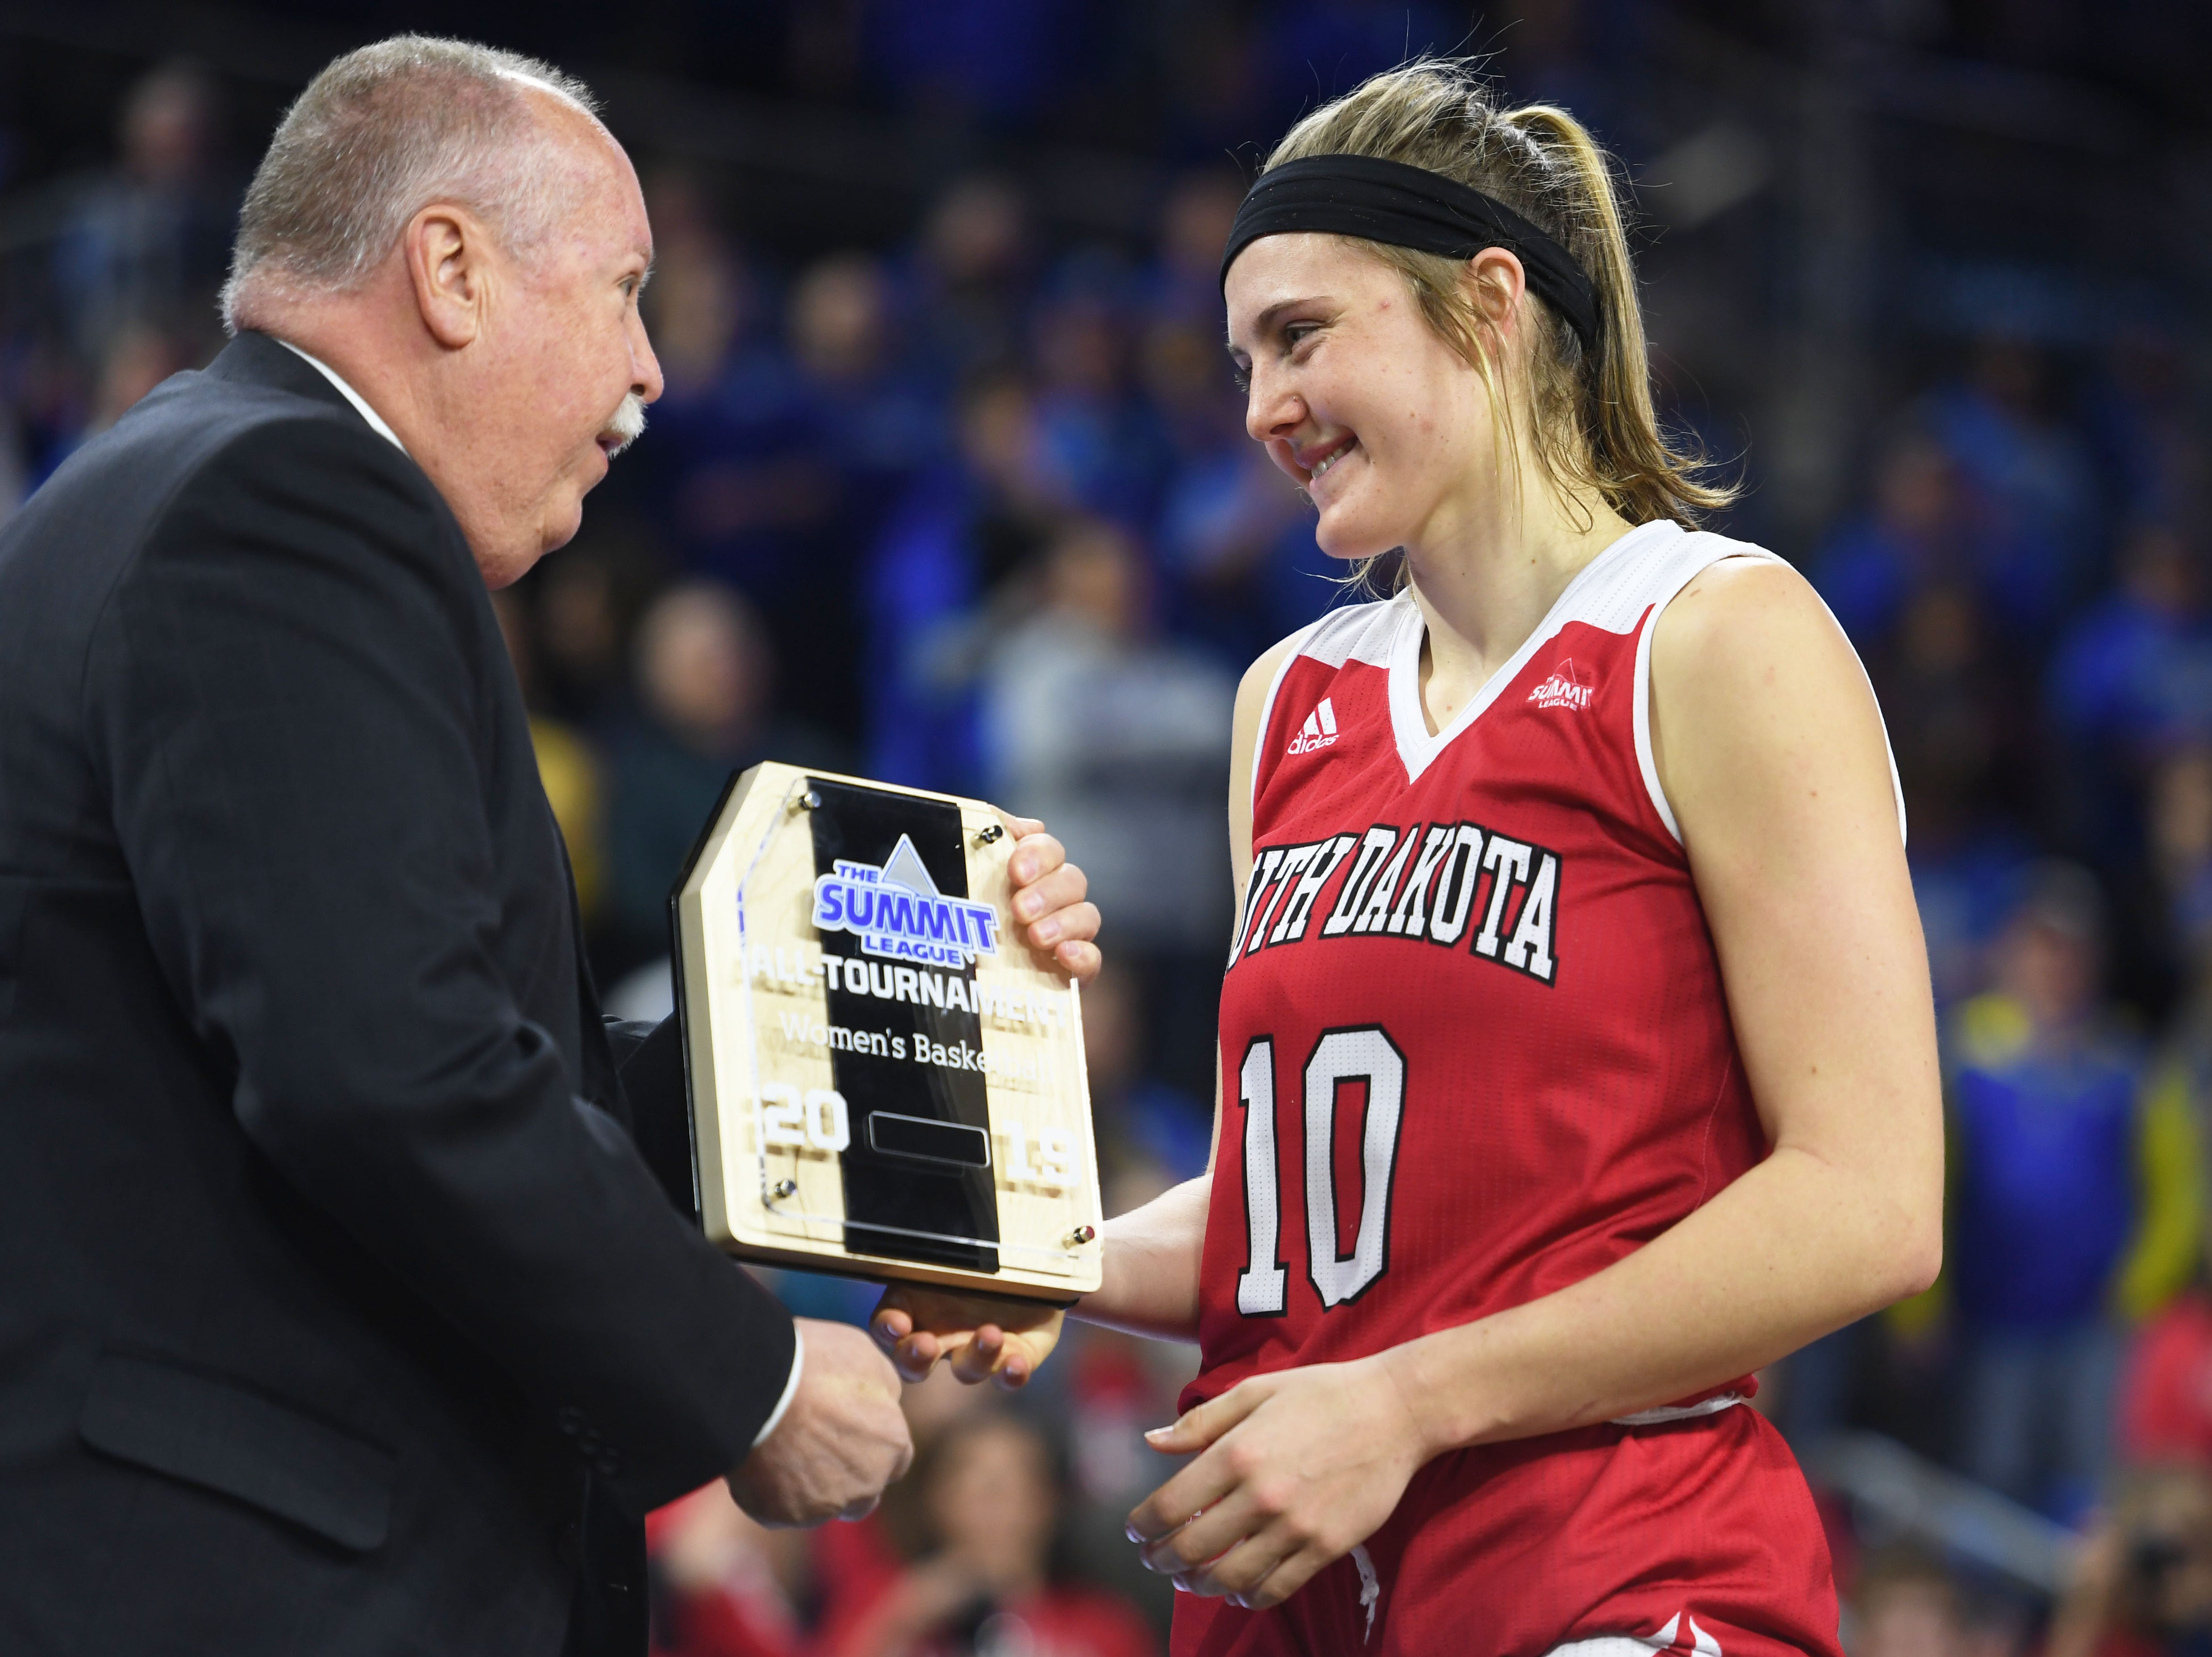 USD's Allison Arens is recognized after the game against SDSU Tuesday, March 12, in the Summit League women's championship at the Denny Sanford Premier Center in Sioux Falls.